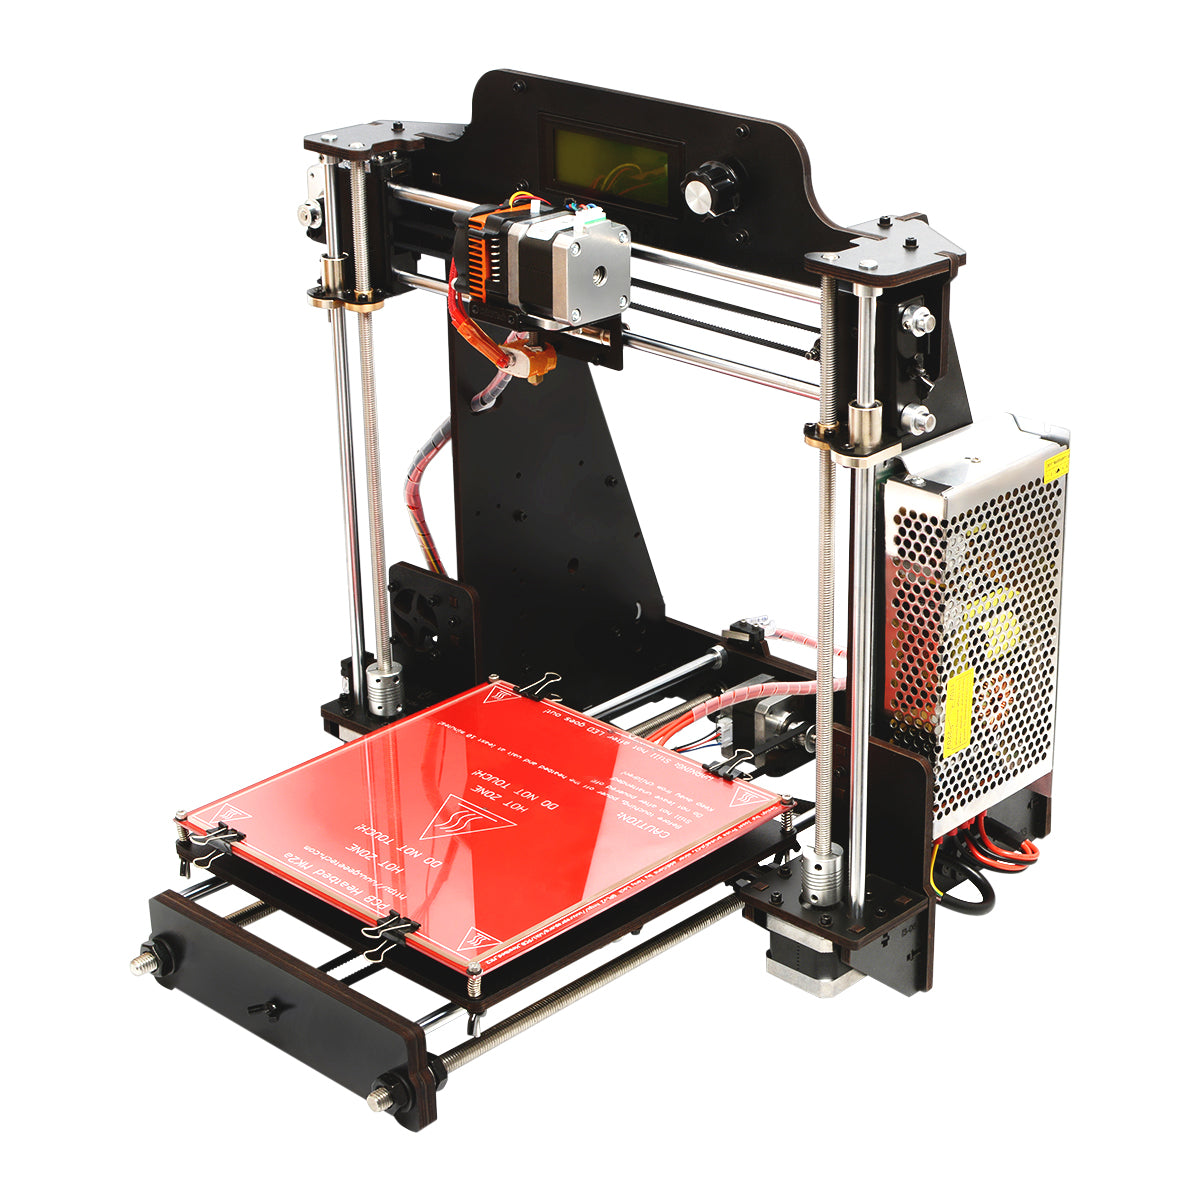 Geeetech Prusa I3 Pro W DIY 3D Printer 200x200x180mm Printing Size 1.75mm 0.3mm Nozzle